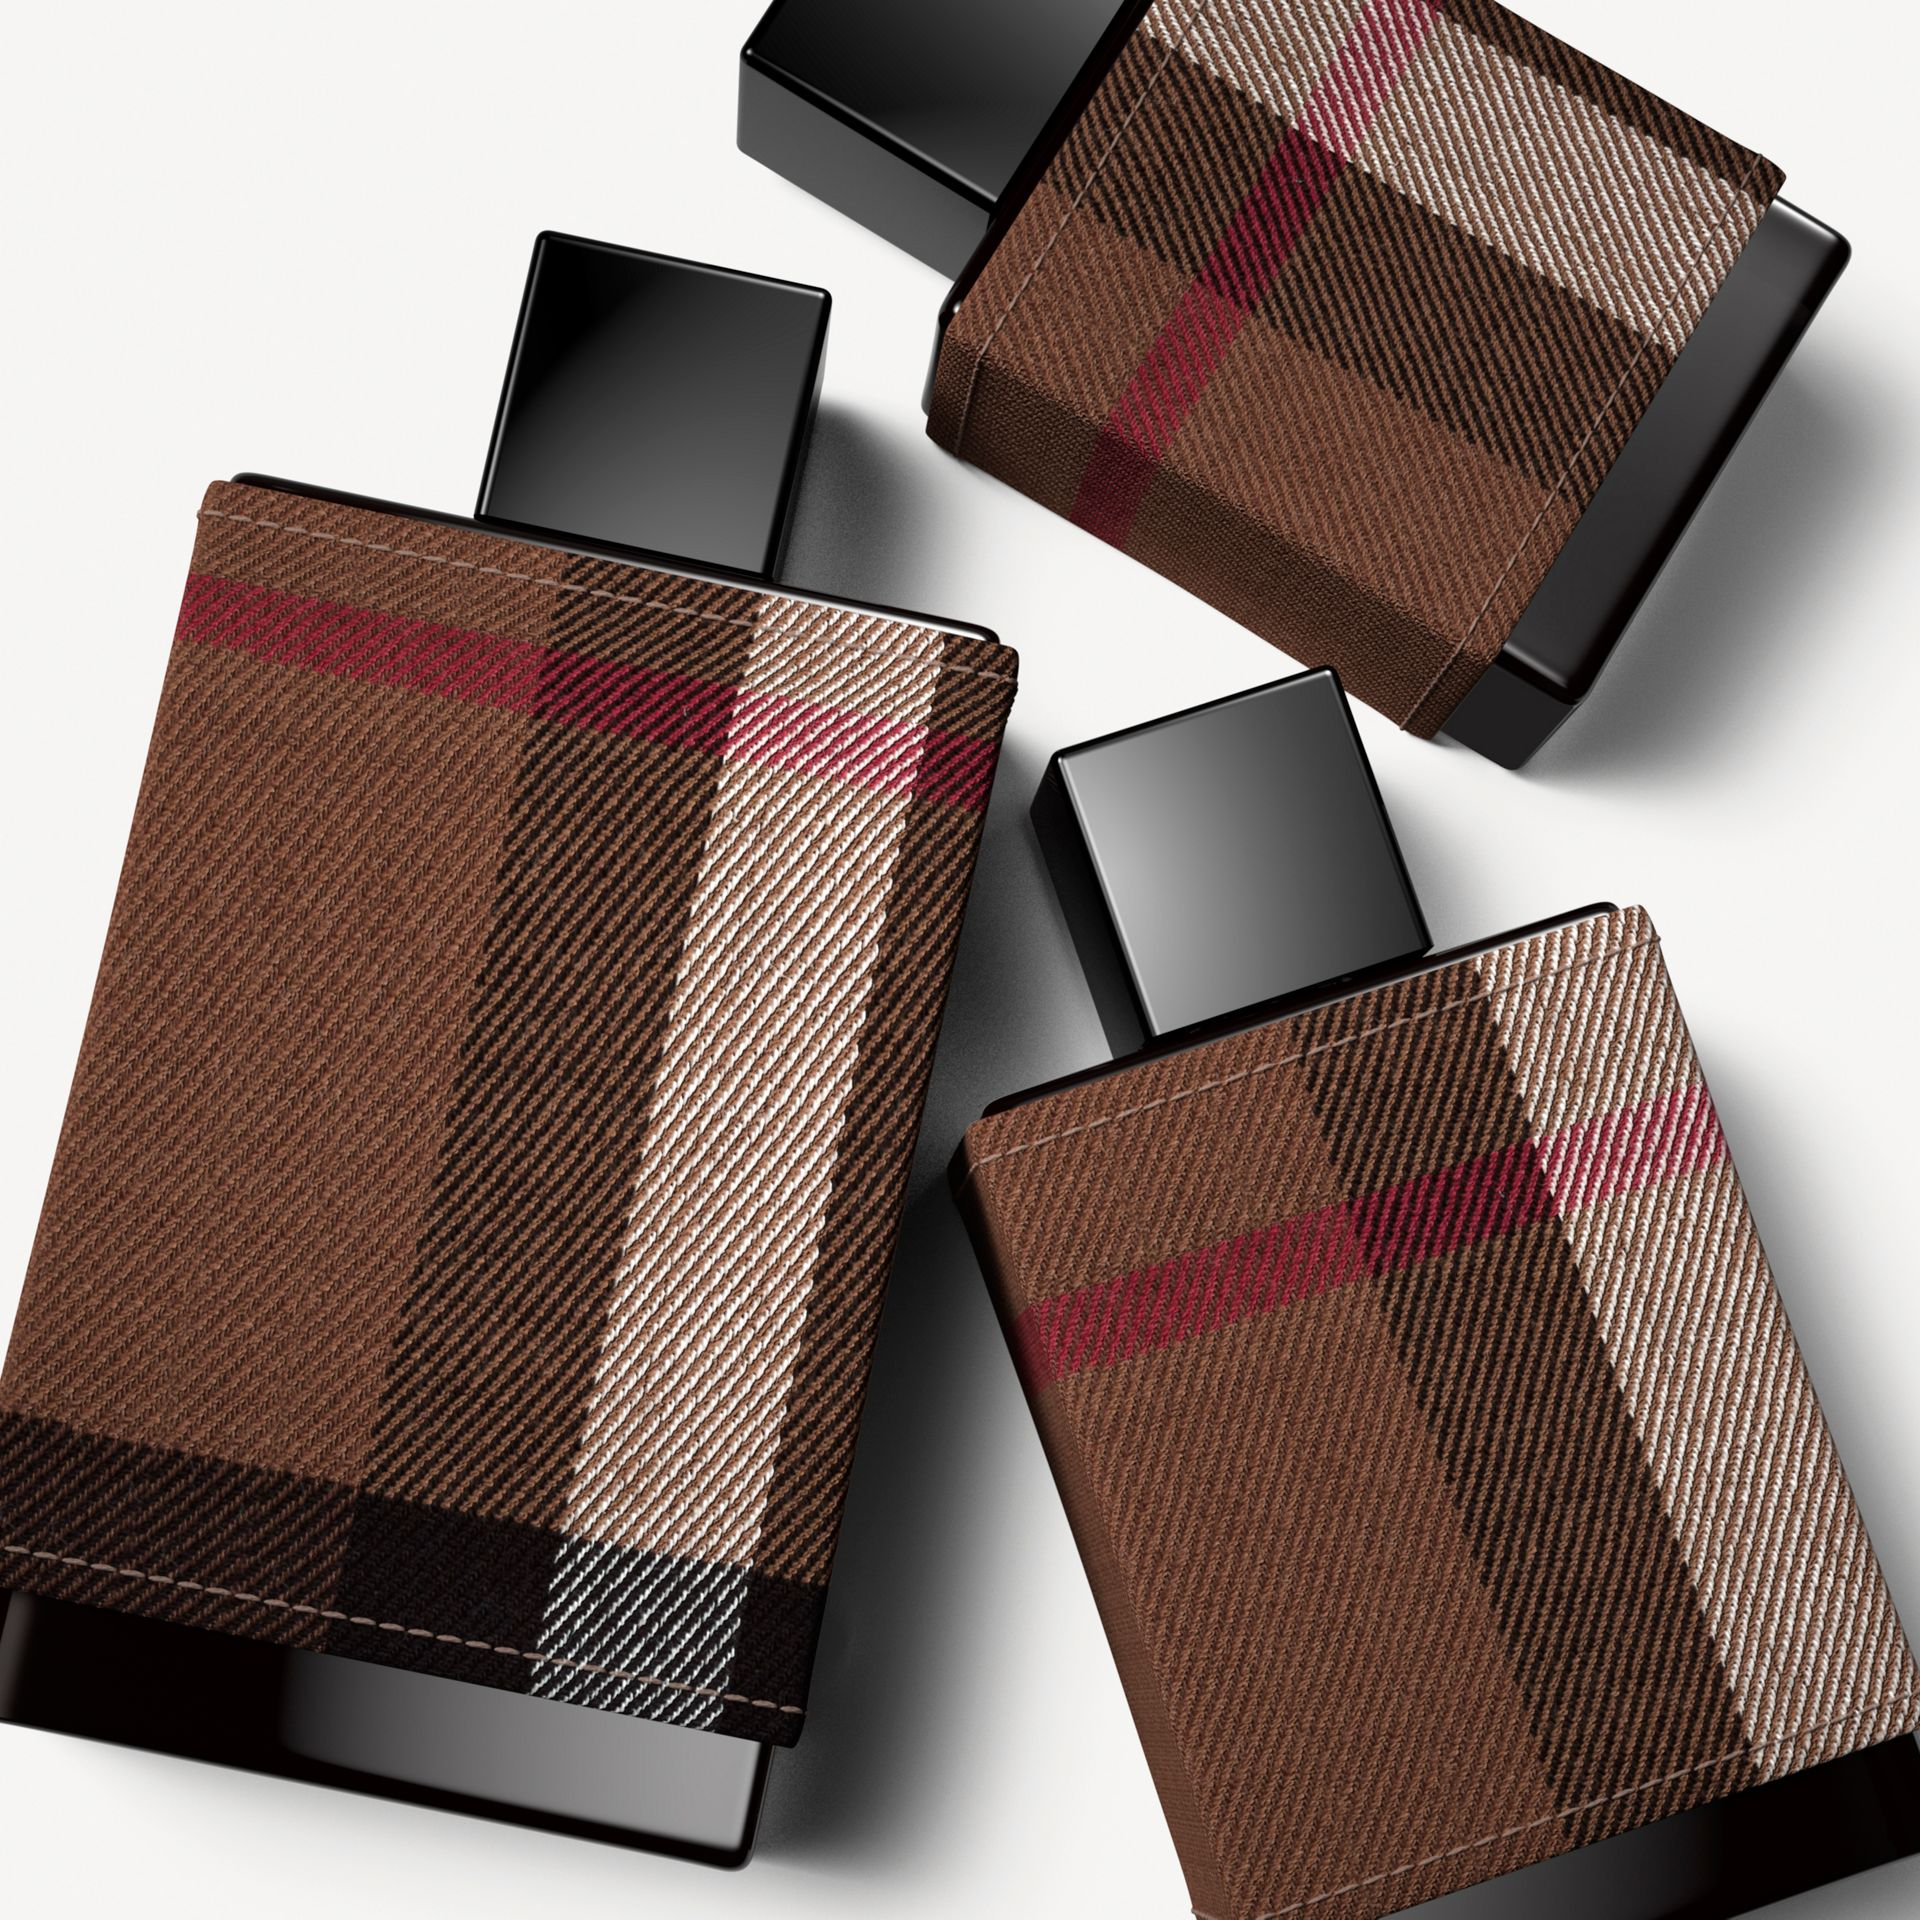 Burberry London For Men Eau De Toilette 100 ml - galeria de imagens 2